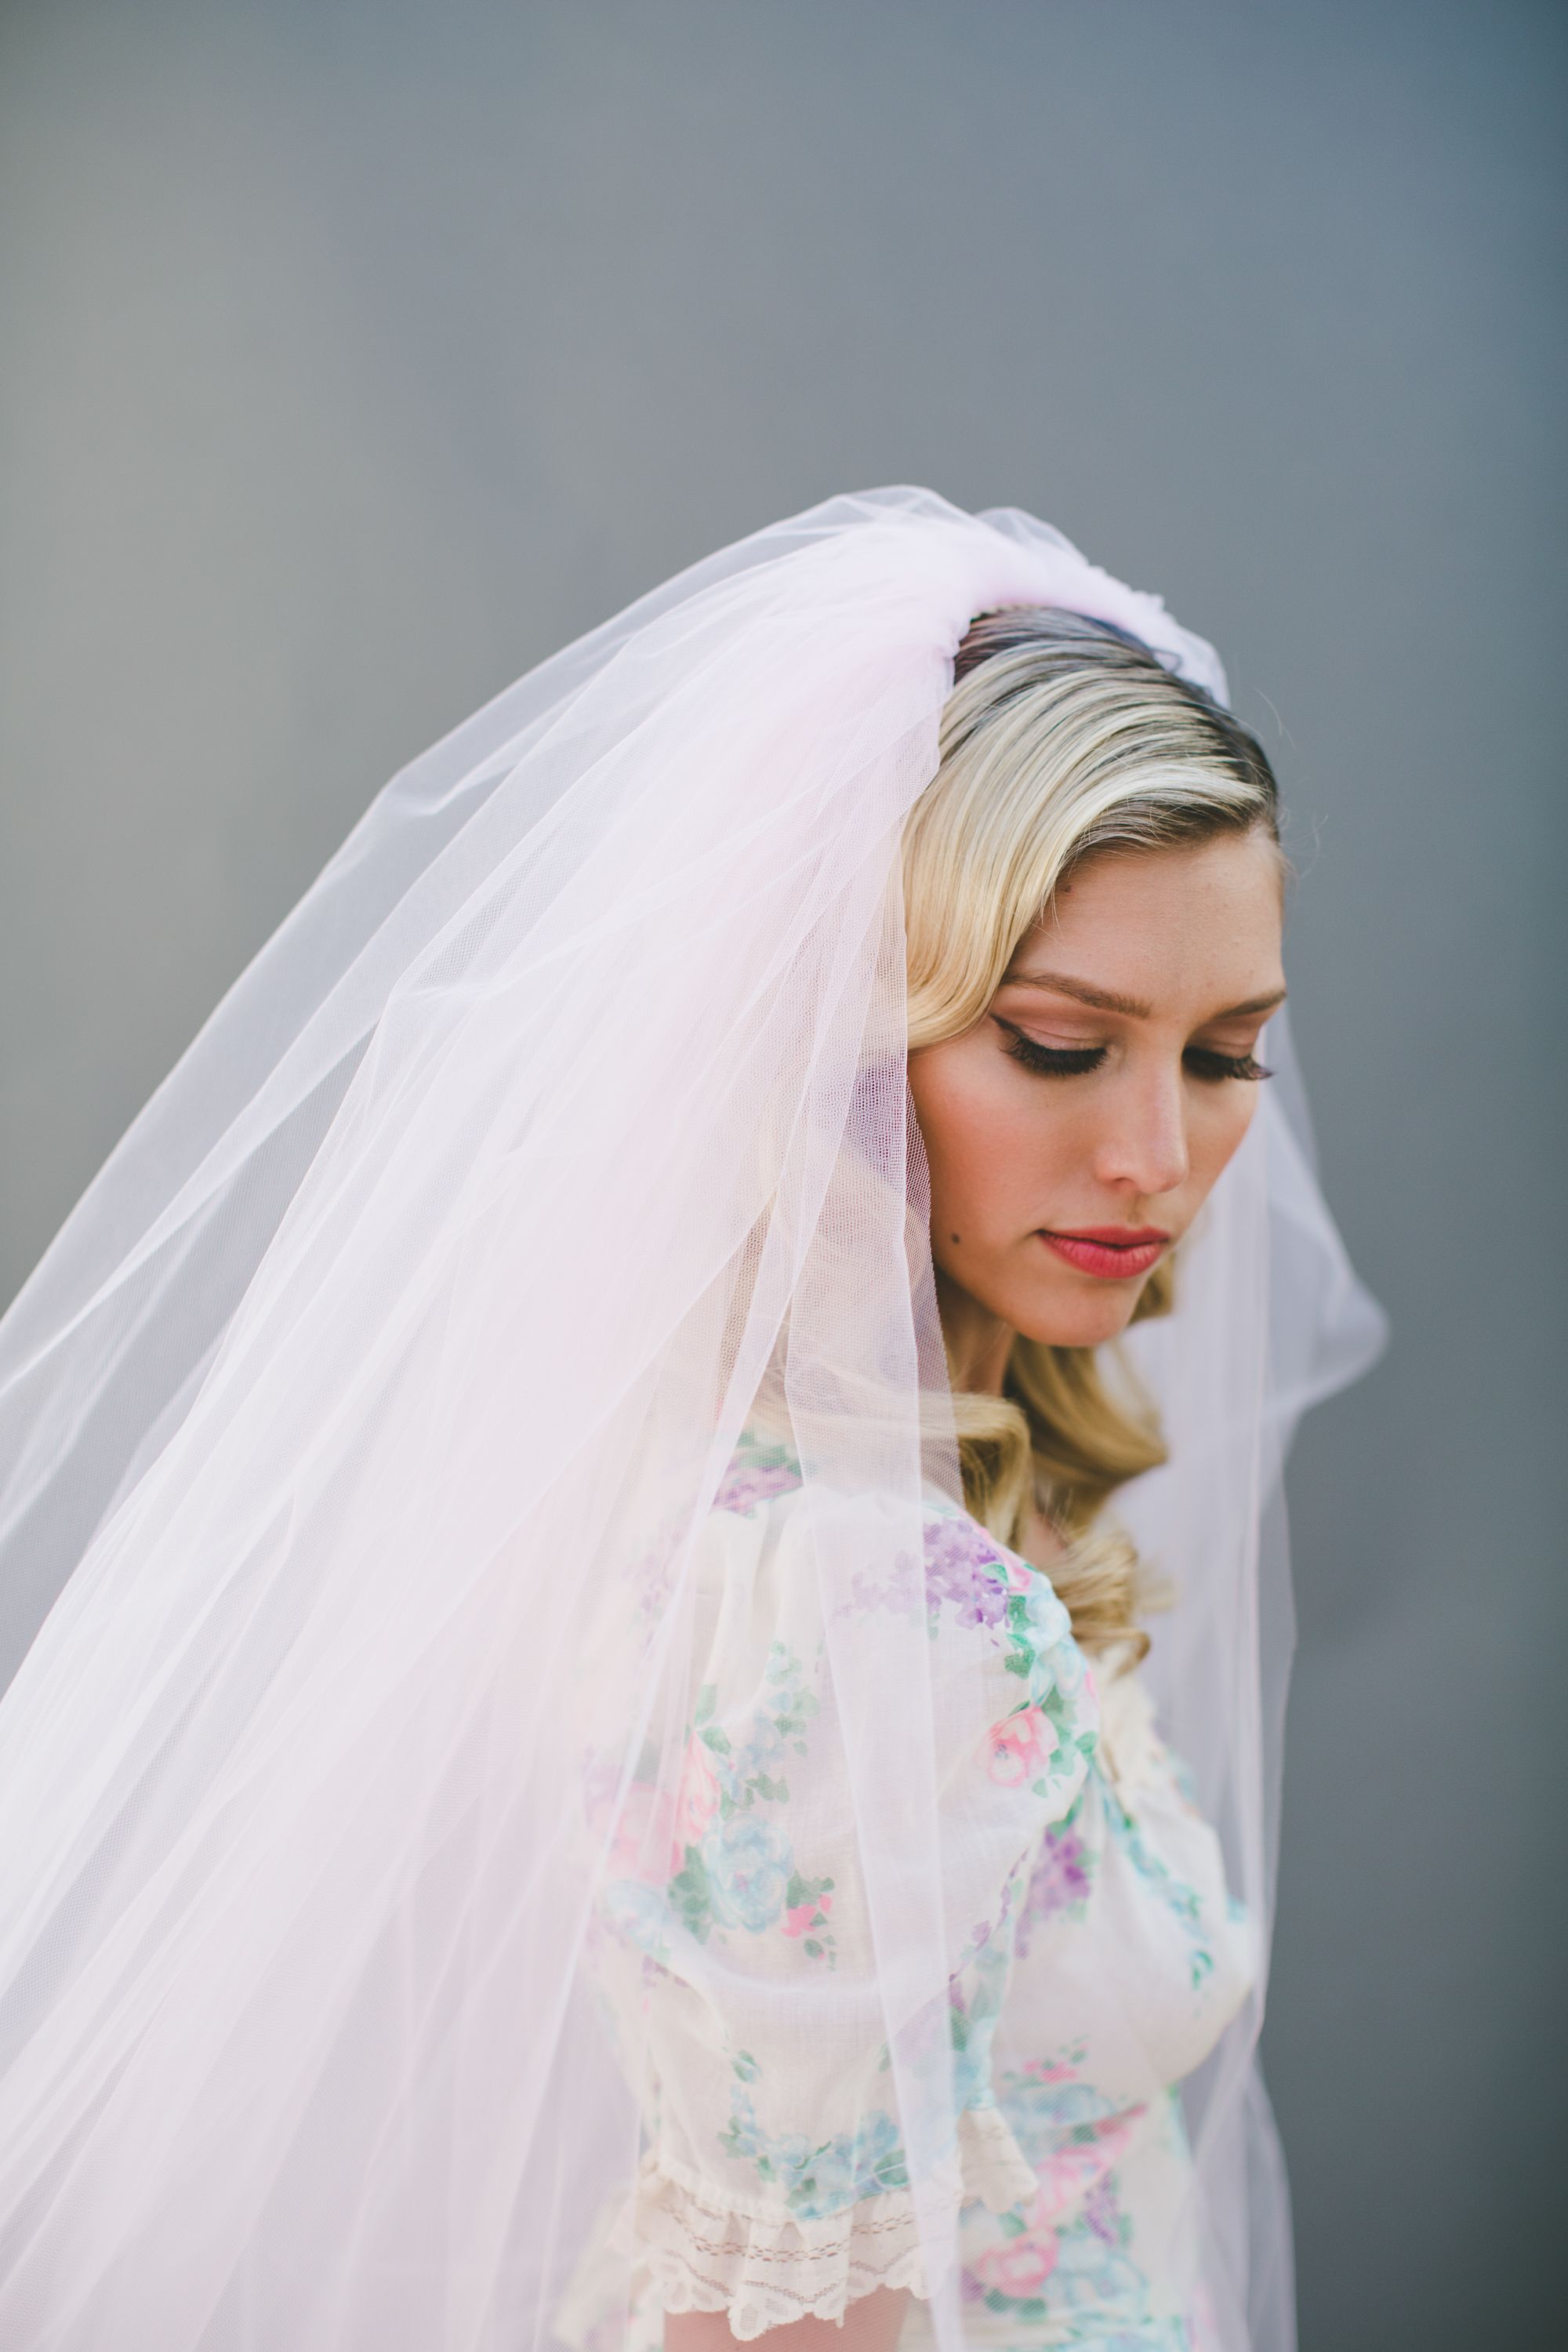 Look - Vintage Exclusive veil for beautiful bridals video